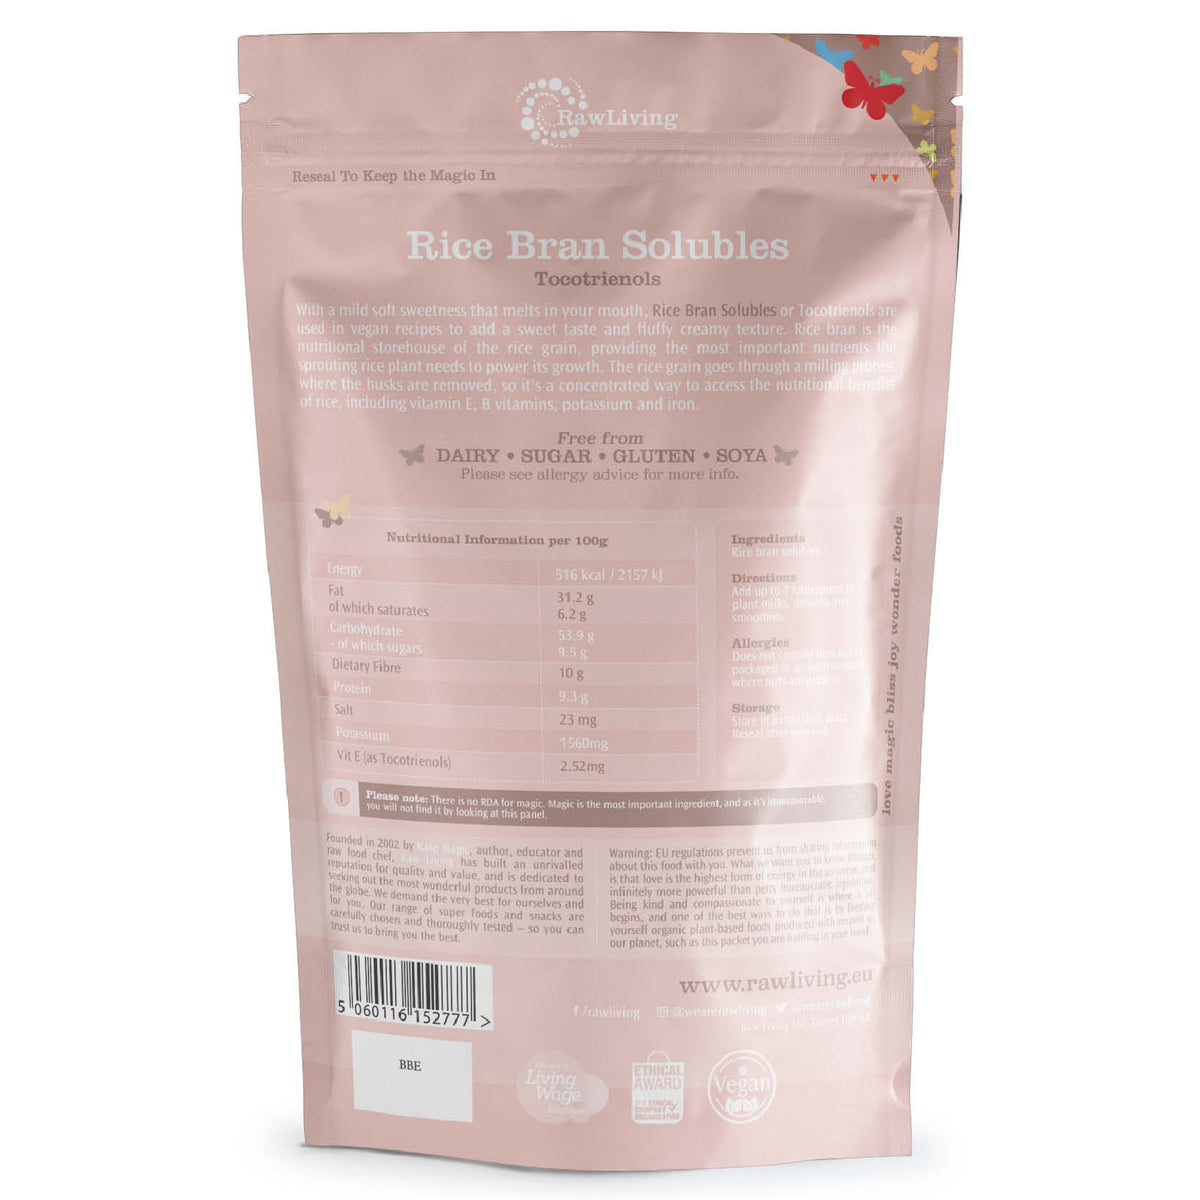 Rice Bran Solubles - Tocotrienols (100g, 250g, 1kg)